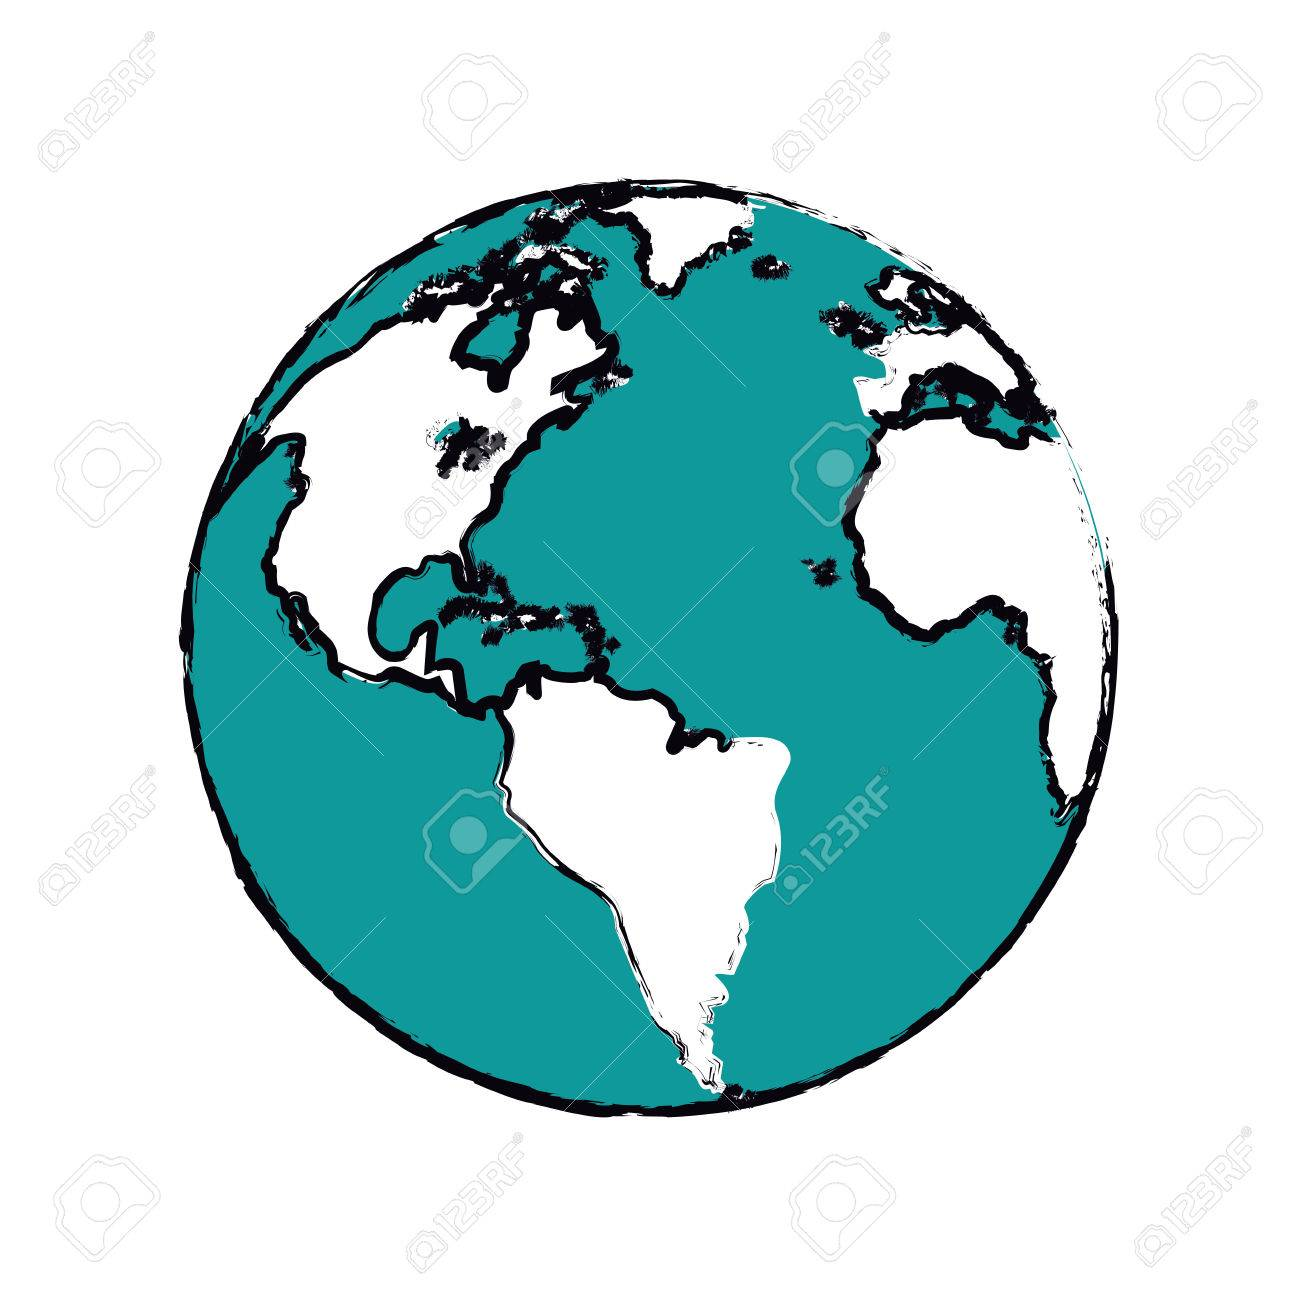 Cartoon picture of the world globe free download best cartoon 1300x1300 cartoon globe map world earth business icon vector illustration gumiabroncs Choice Image